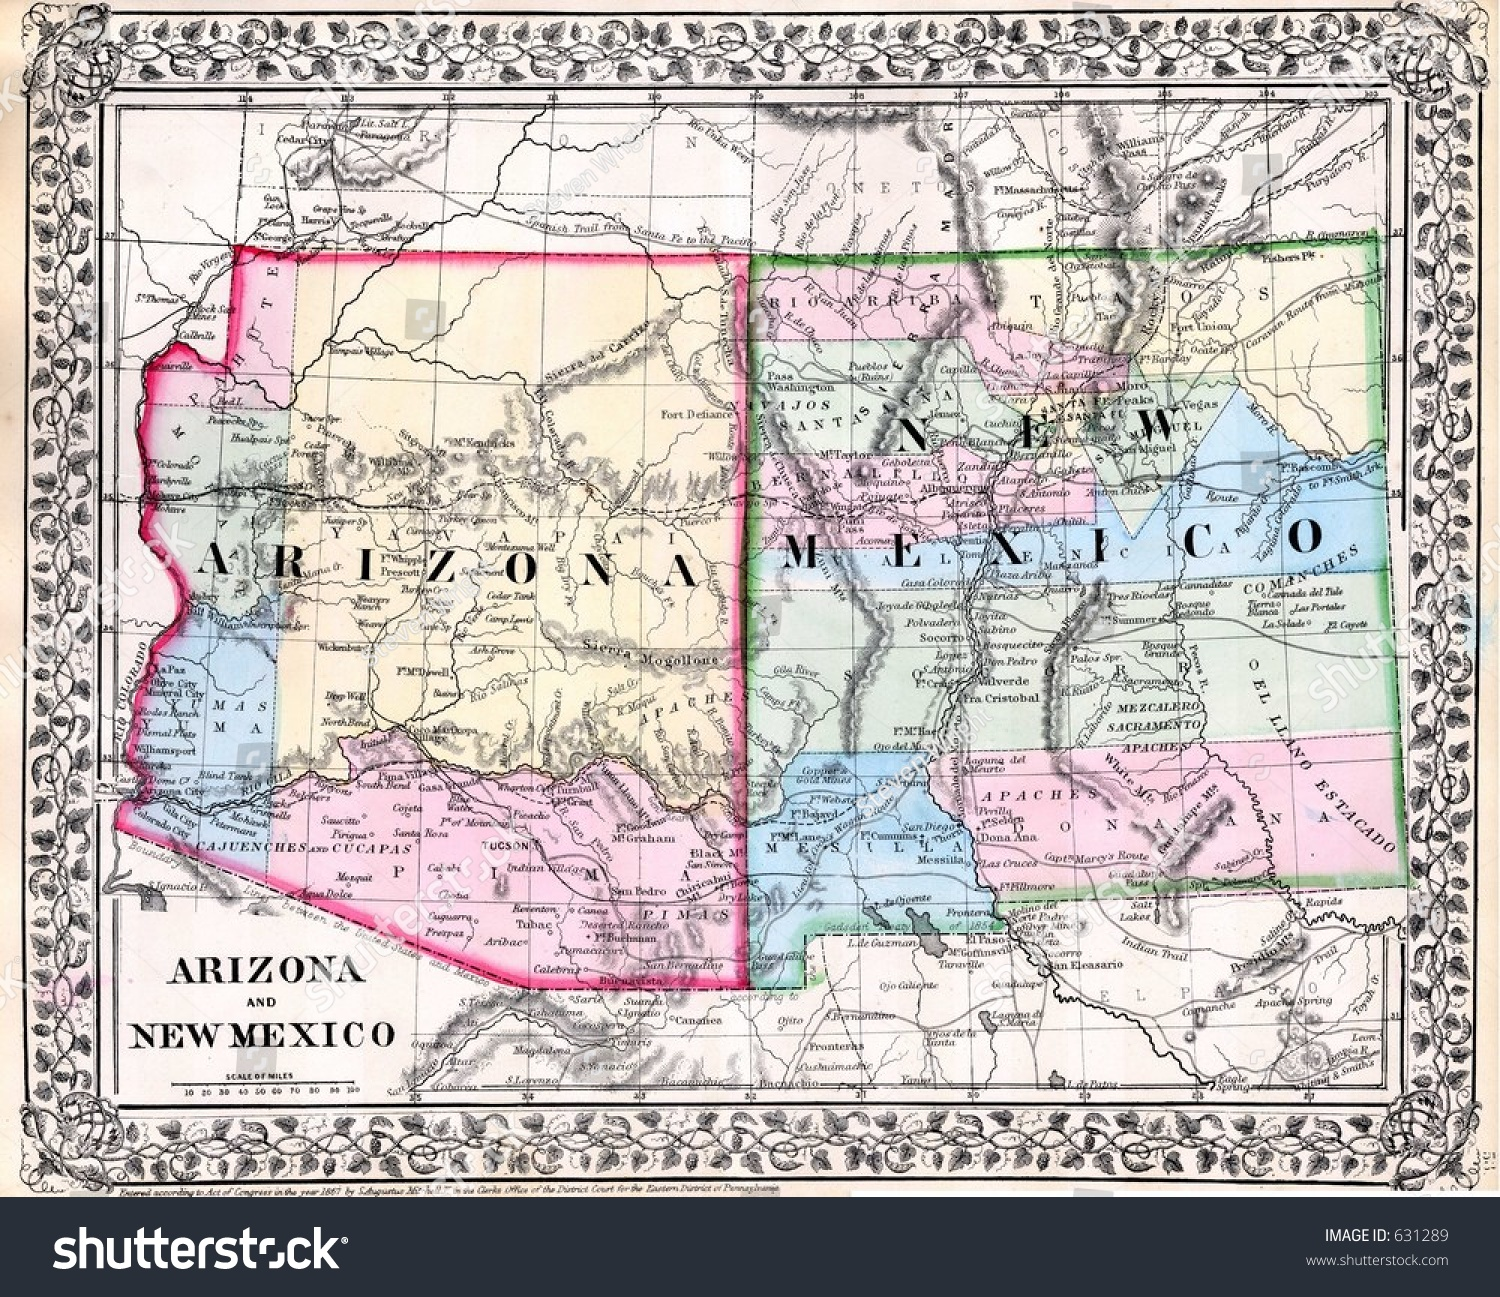 Antique Map New Mexico Arizona Stock Illustration - Map of arizona and new mexico